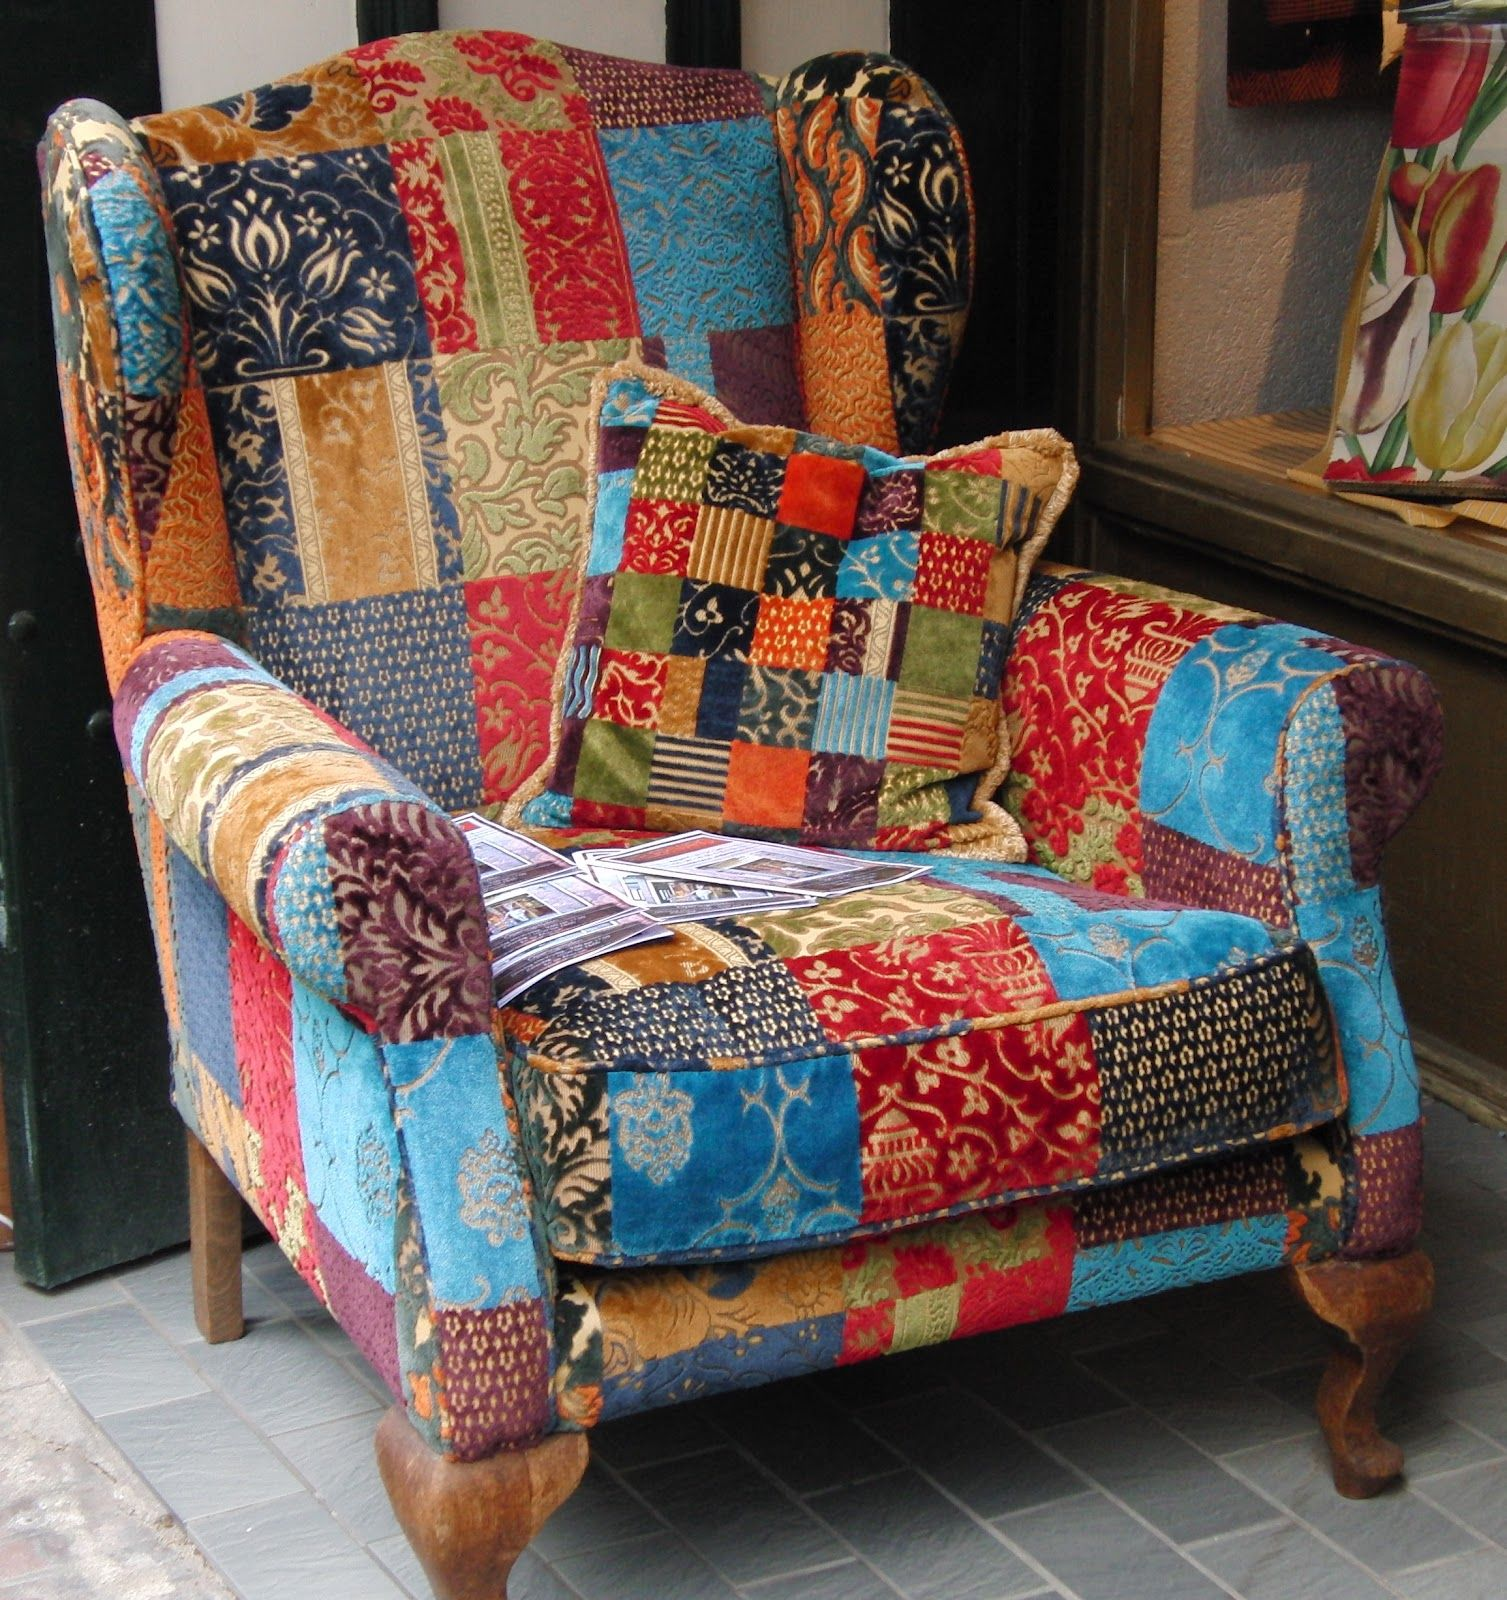 Patchwork Velvet Chair Photo By Marjo The Netherlands